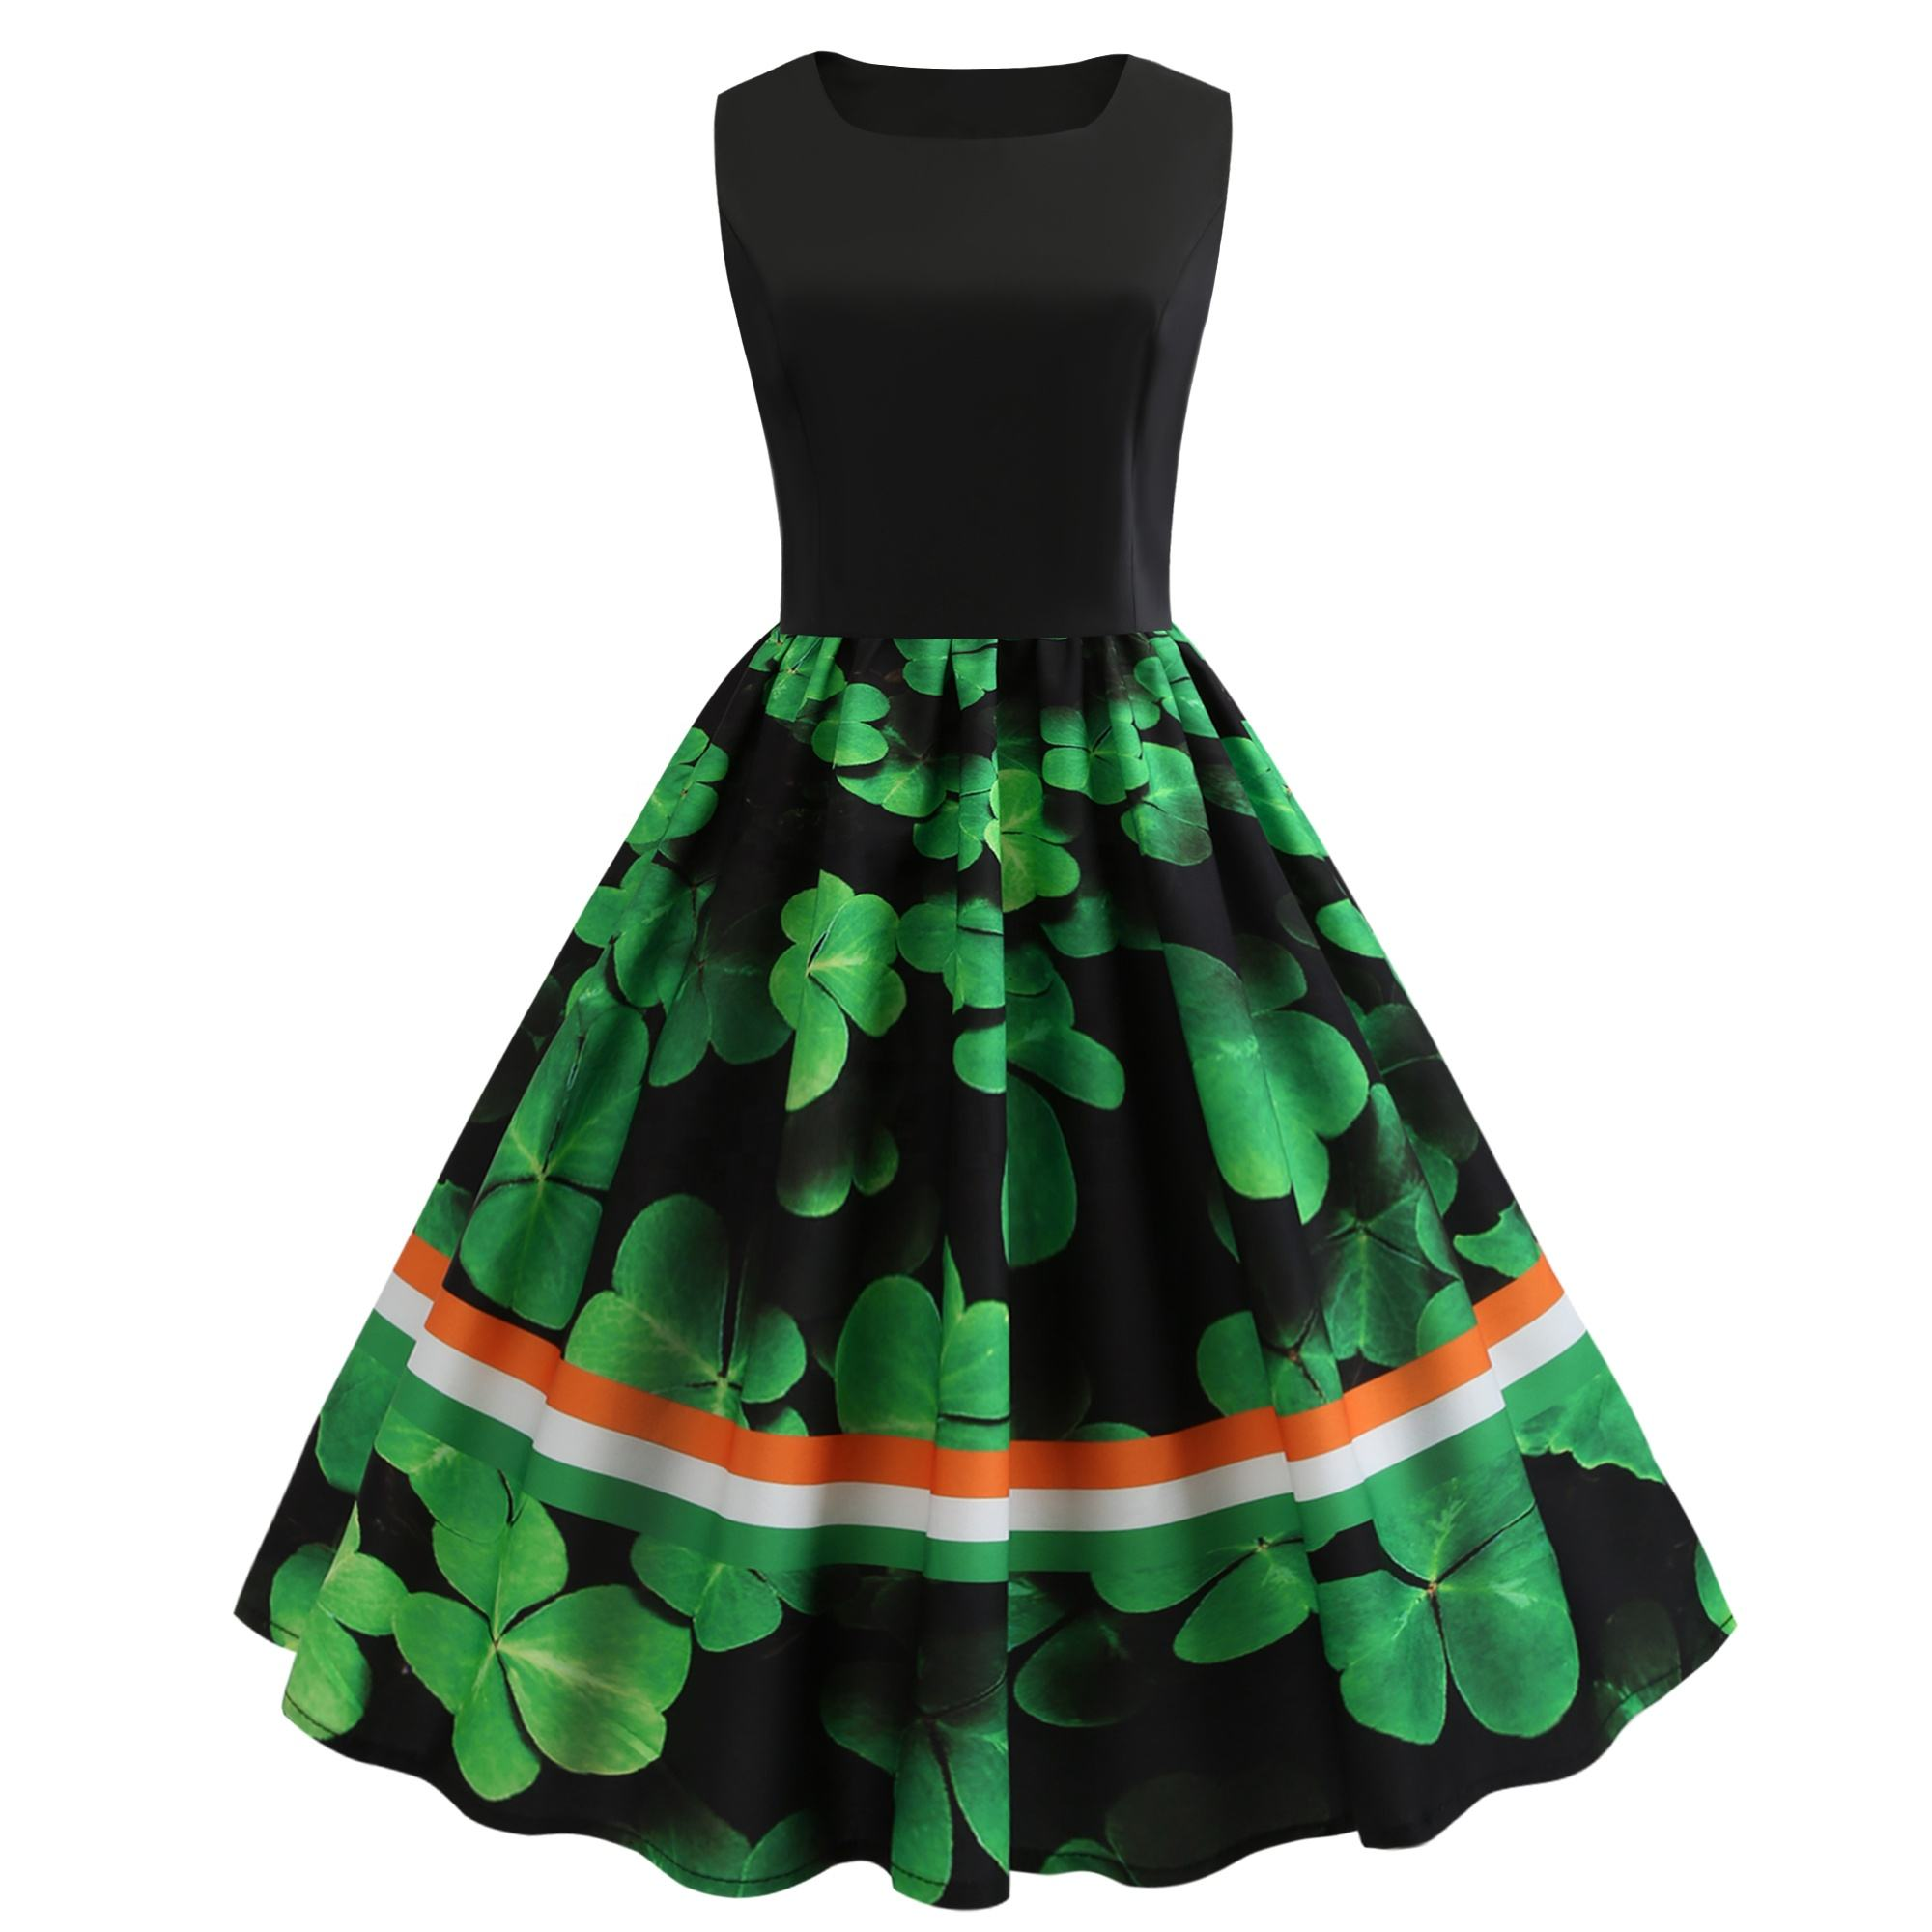 Wholesales St. Patrick's Day Clothing 3D Clover Stripes Print 1950s Reto Vintage Cocktail Party Spring Summer Dress SP-1103